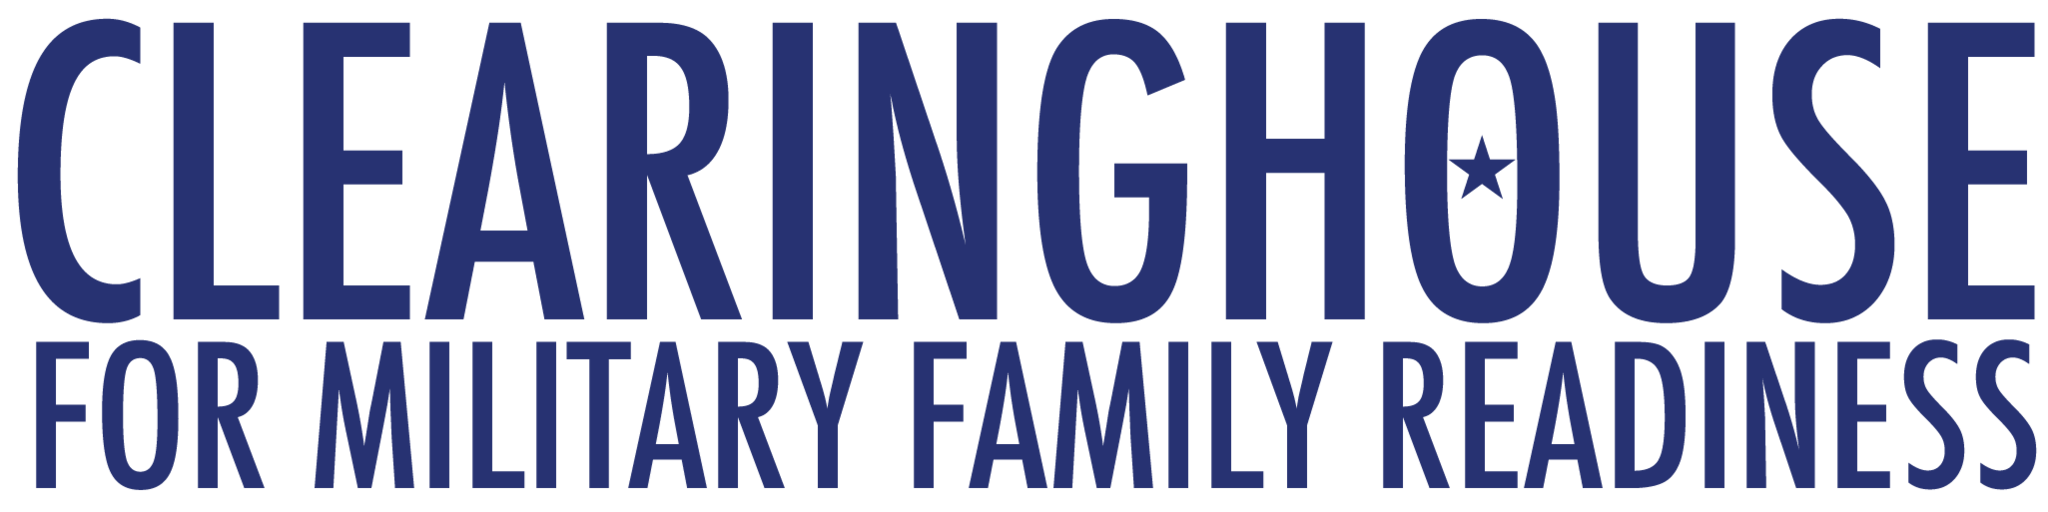 Military Clearinghouse for Family Readiness logo